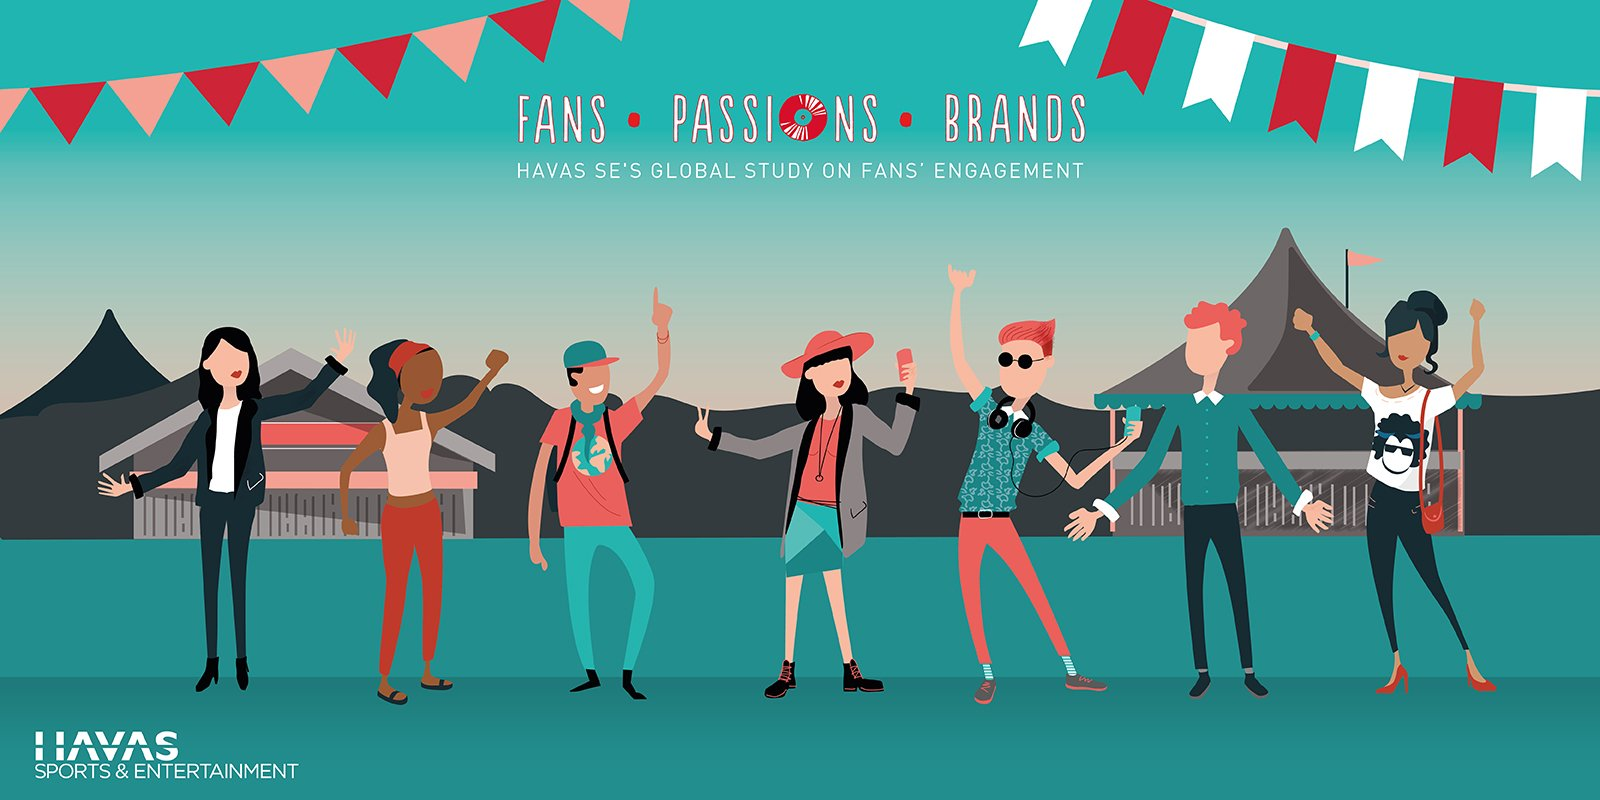 RT @Havas_SE: STAY TUNED: Part 2 of FANS.PASSIONS.BRANDS is out TOMORROW. What type of music fan are you? #insight #engage #fans https://t.…